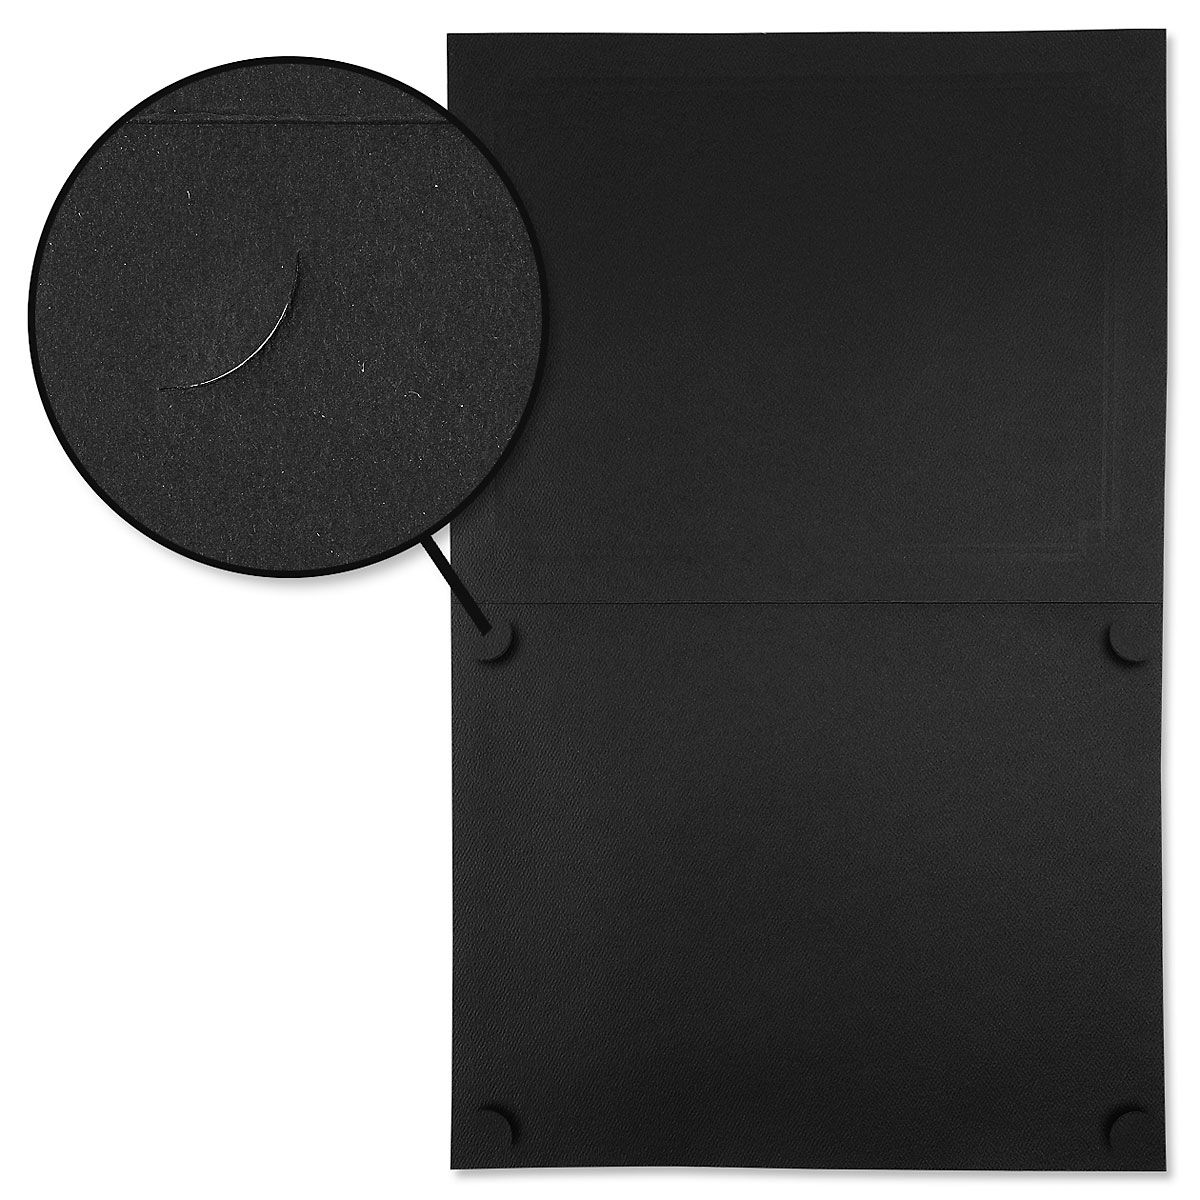 Classic Black Certificate Folder with Silver Border - Set of 25